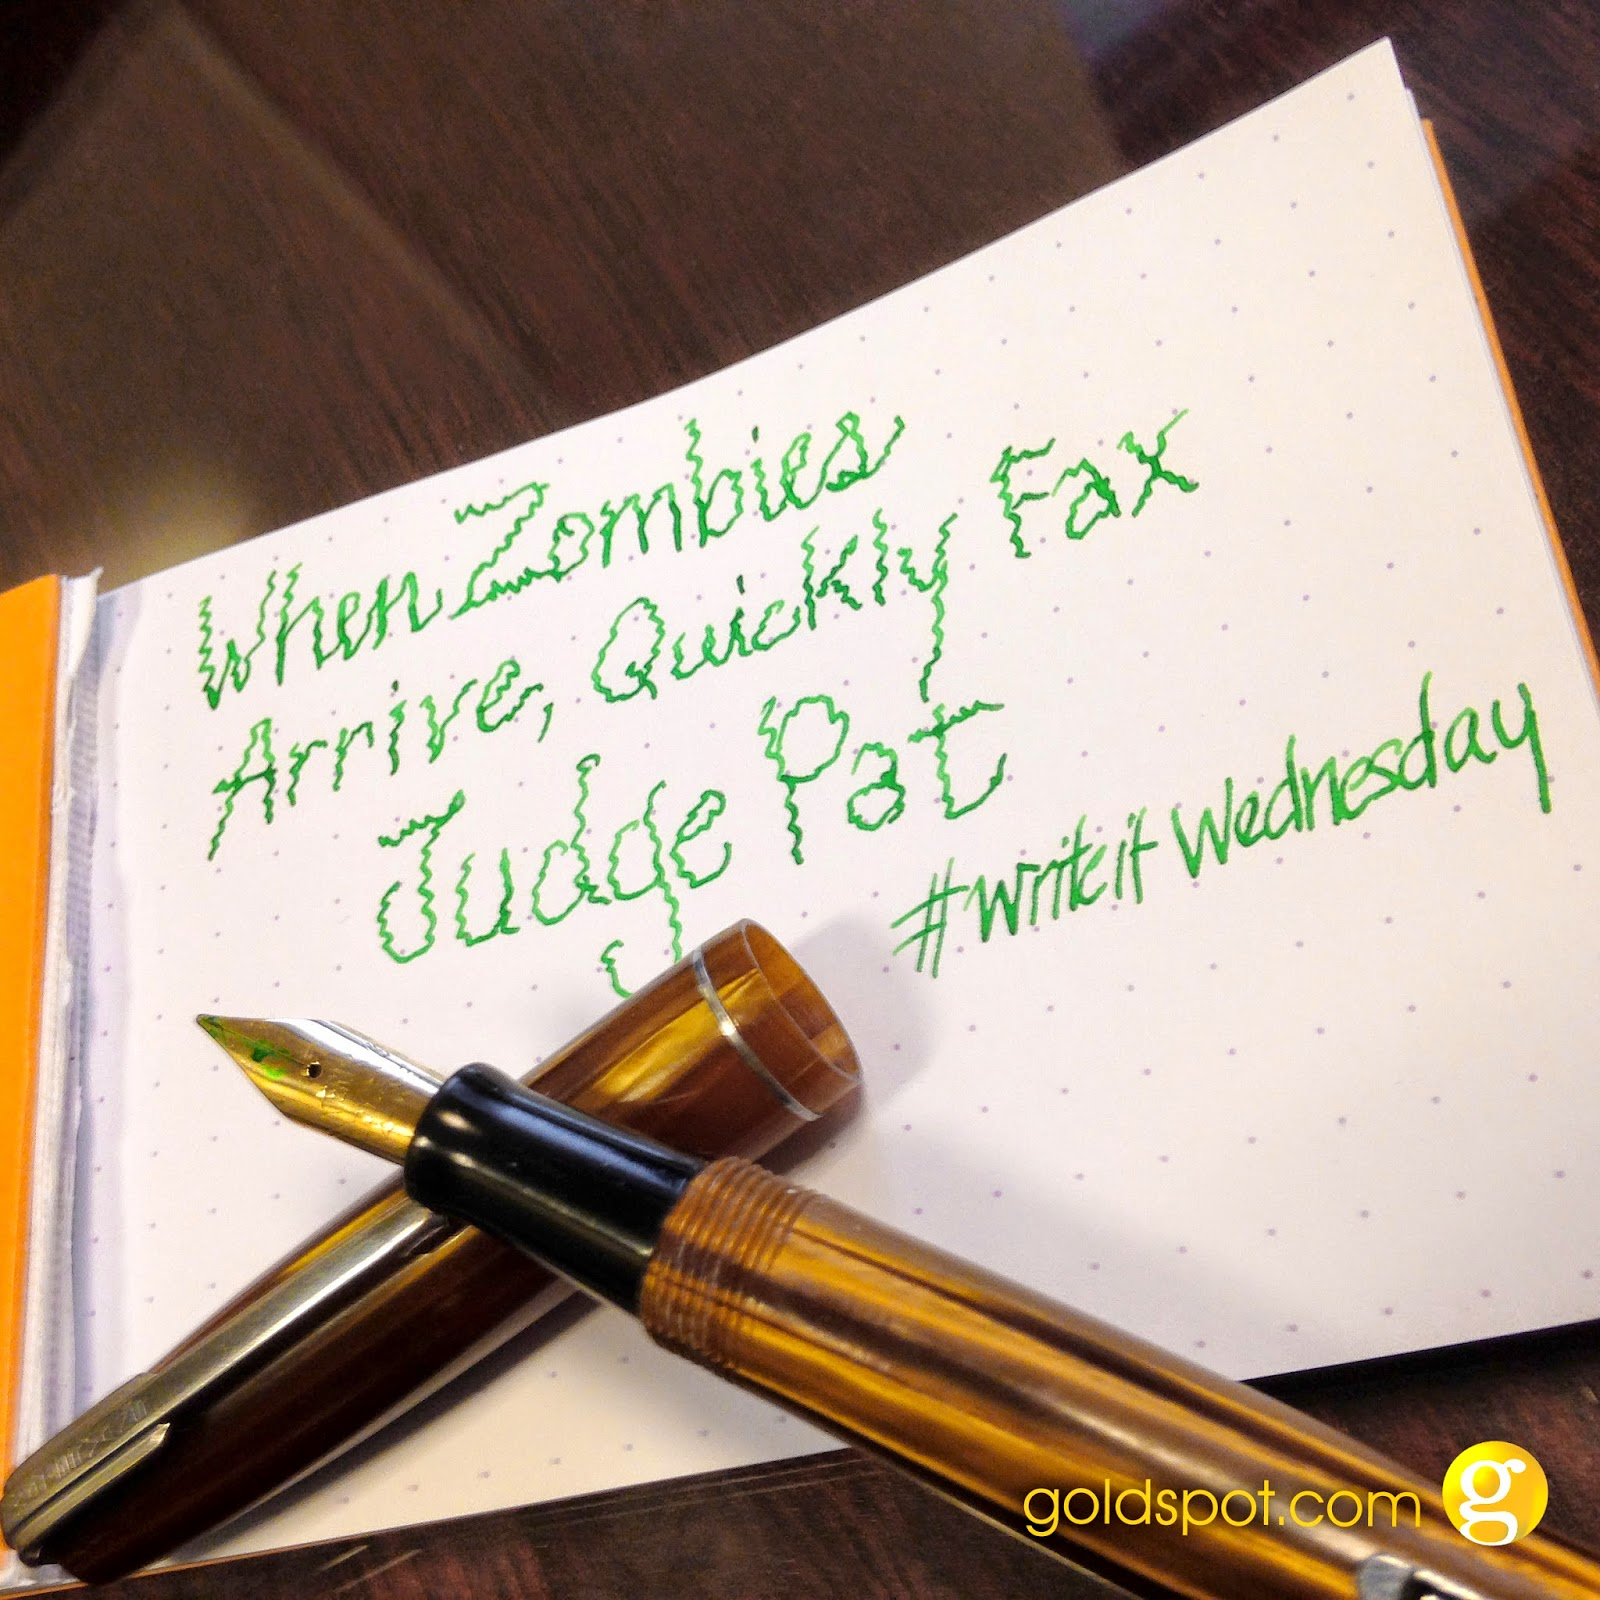 #WriteitWednesday - The Quick Brown Fox